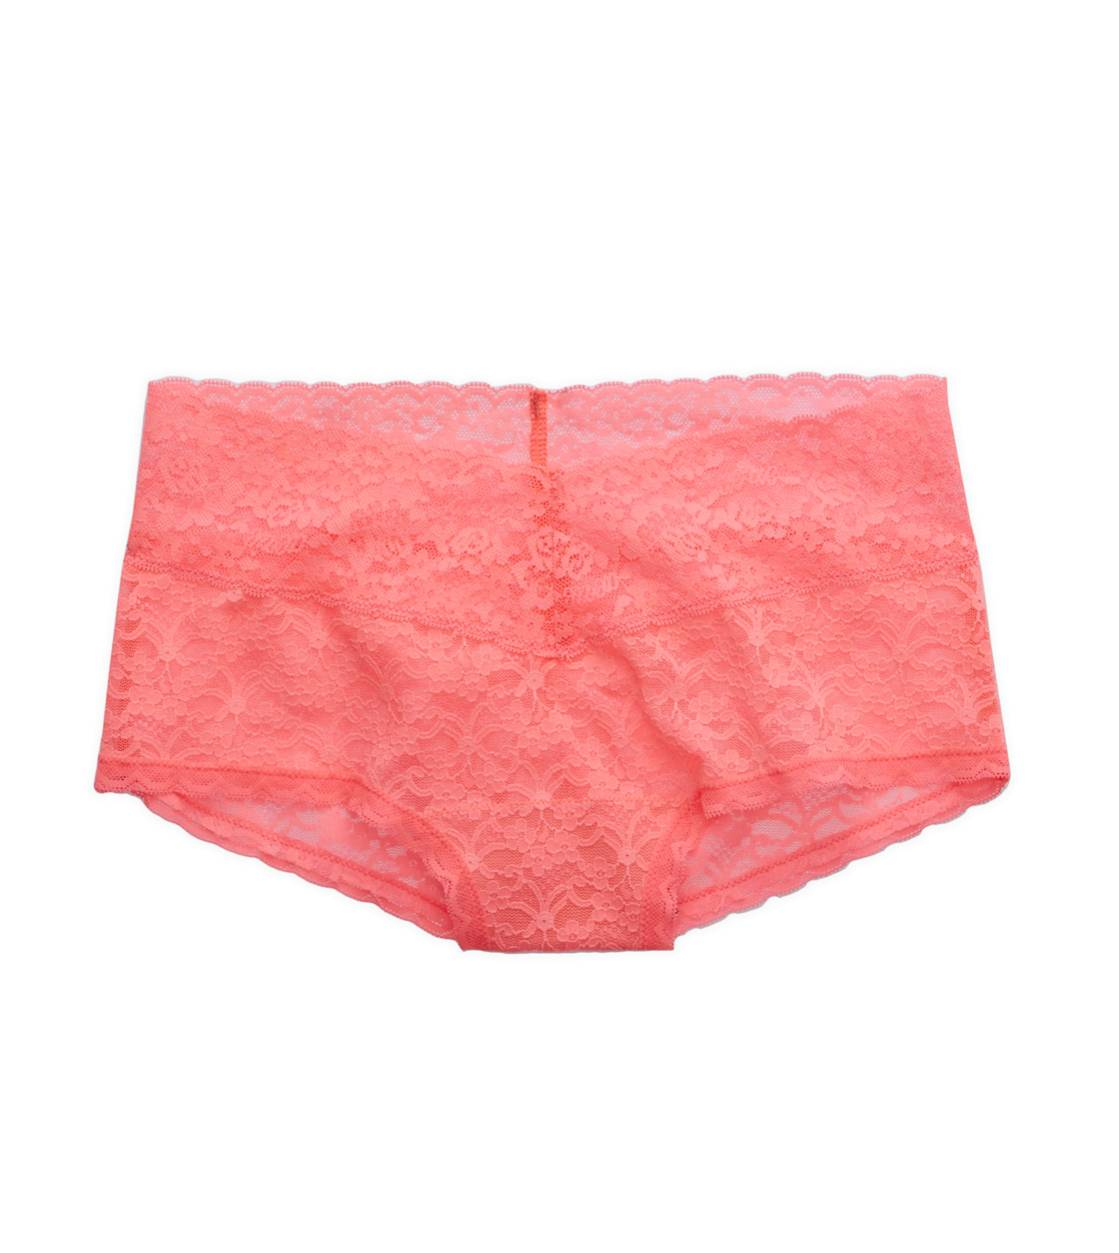 Shocking Pink Aerie Vintage Lace Girly Short